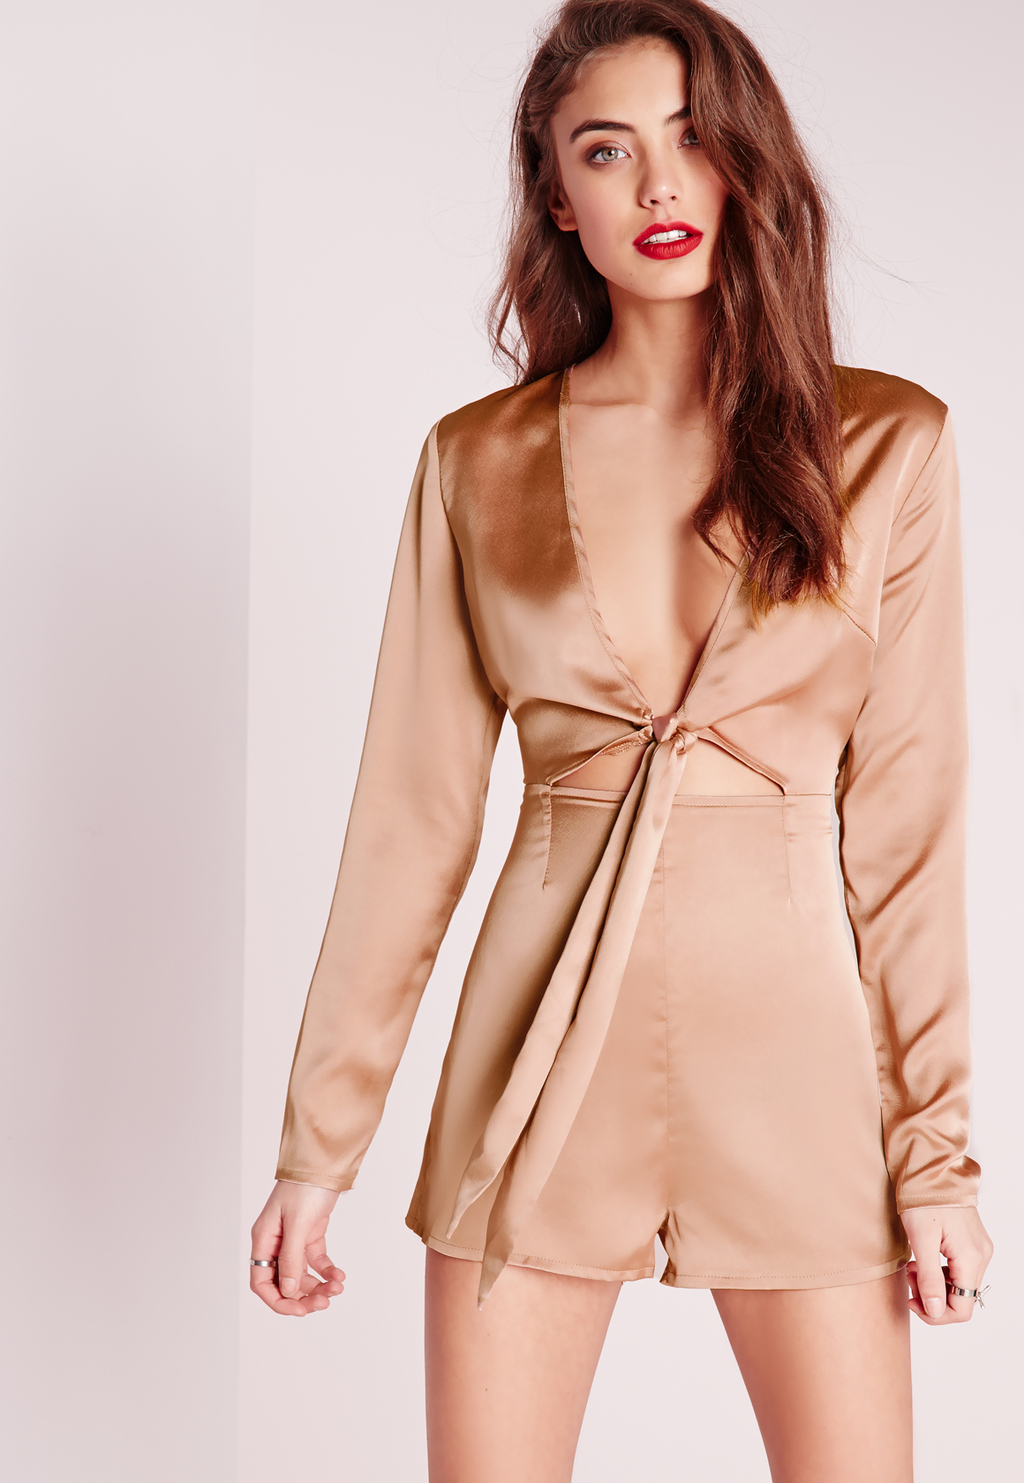 Silky Long Sleeve Tie Front Playsuit Nude, Beige - length: standard; neckline: plunge; pattern: plain; predominant colour: nude; occasions: evening; fit: body skimming; fibres: polyester/polyamide - 100%; sleeve length: long sleeve; sleeve style: standard; texture group: silky - light; style: jumpsuit; pattern type: fabric; season: s/s 2016; wardrobe: event